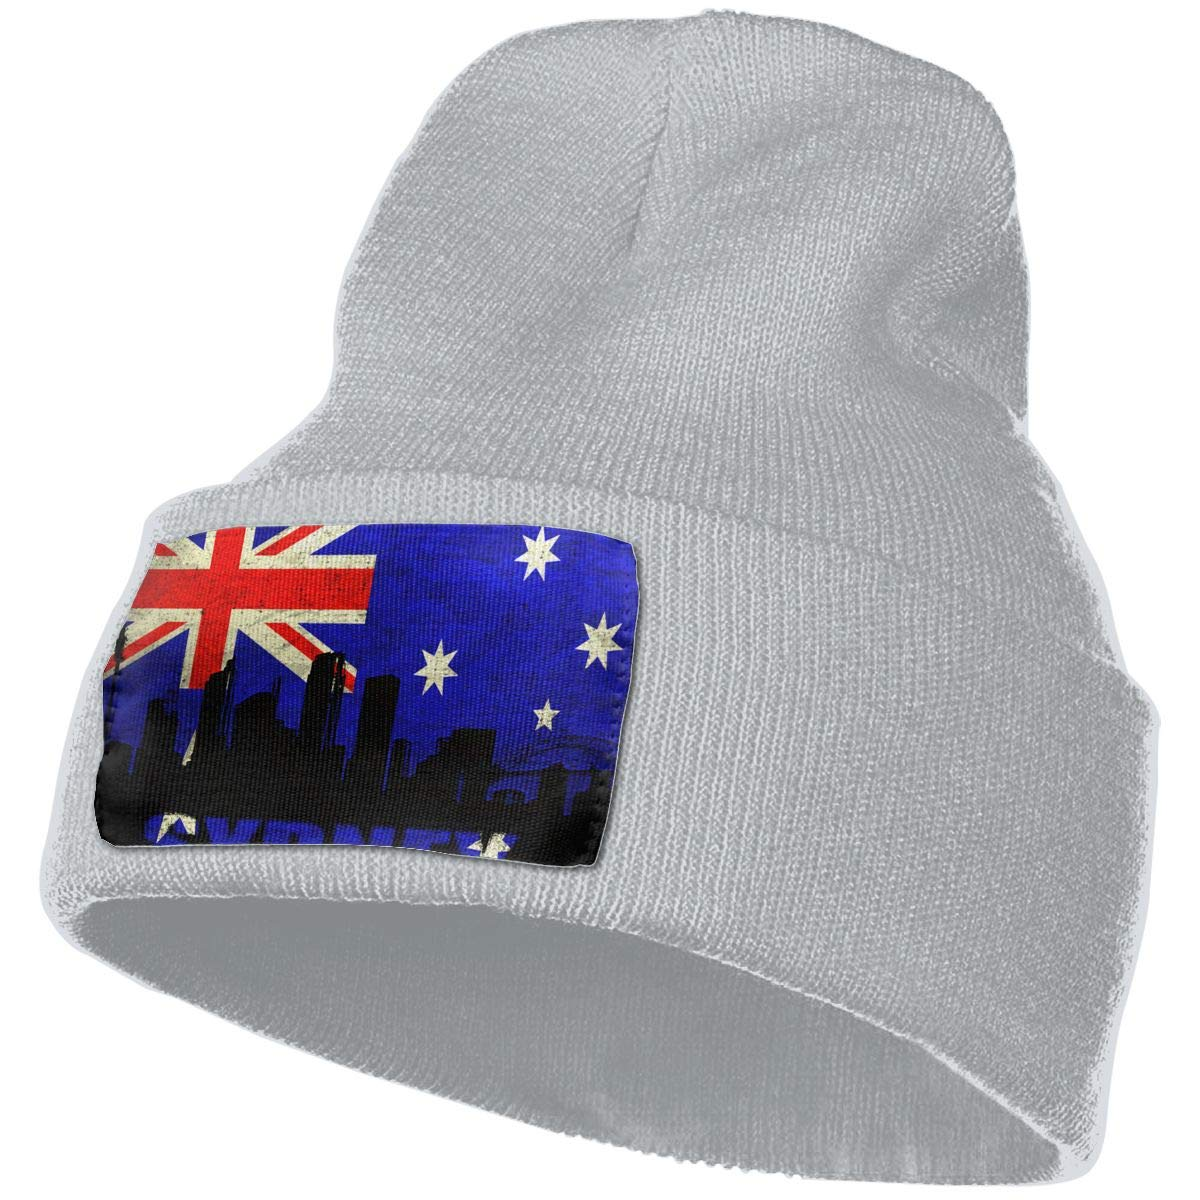 JimHappy Australia Sydney Architecture Hat for Men and Women Winter Warm Hats Knit Slouchy Thick Skull Cap